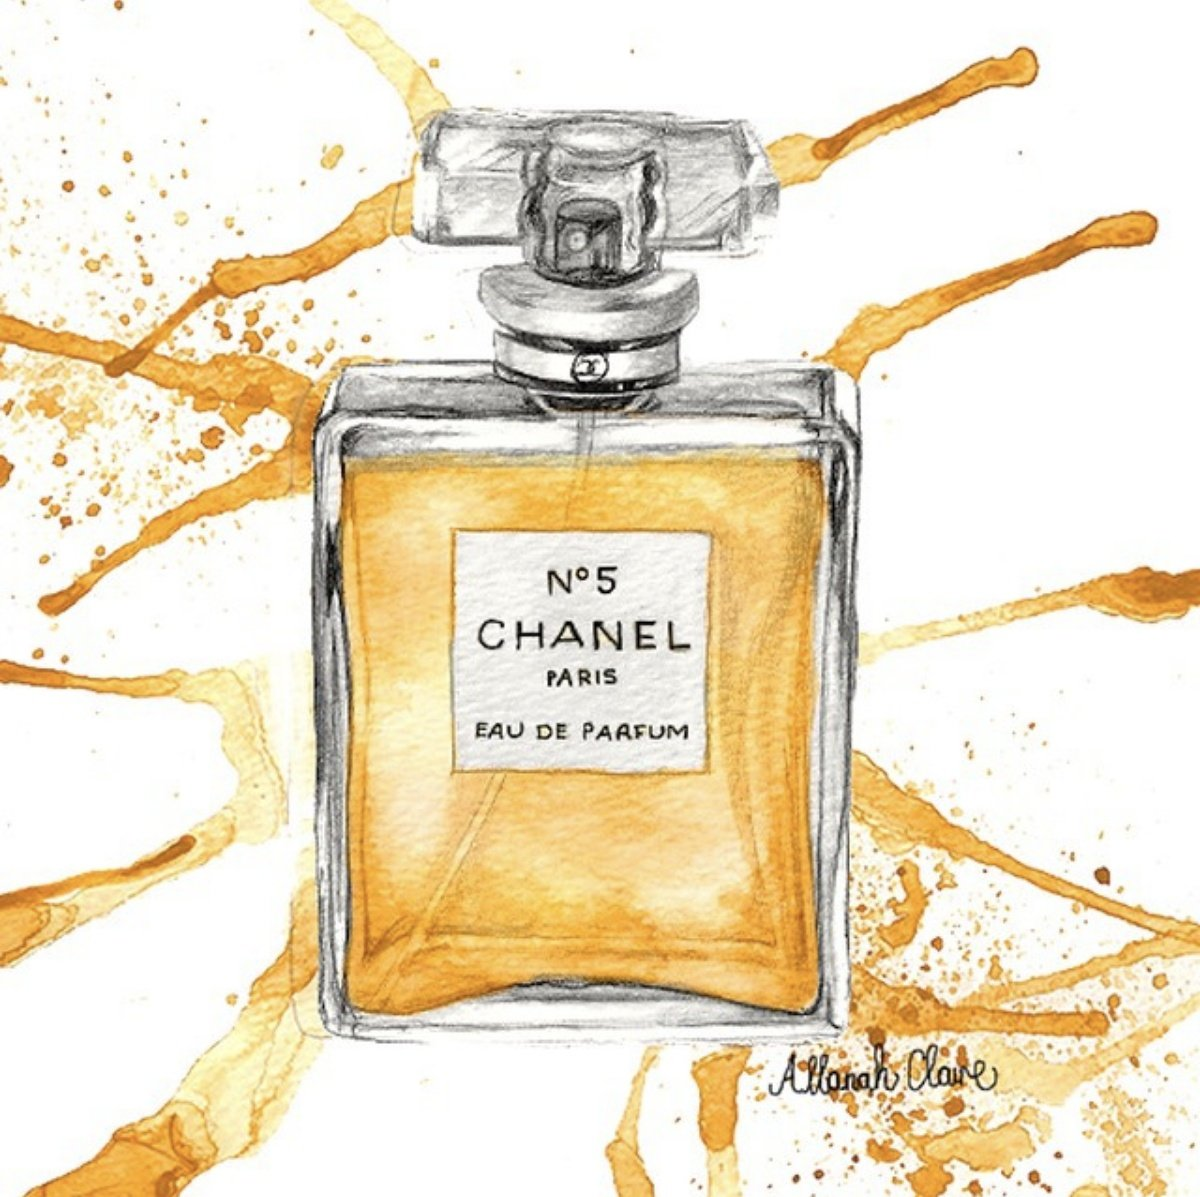 Chanel No5 Perfume Splash, 2015.